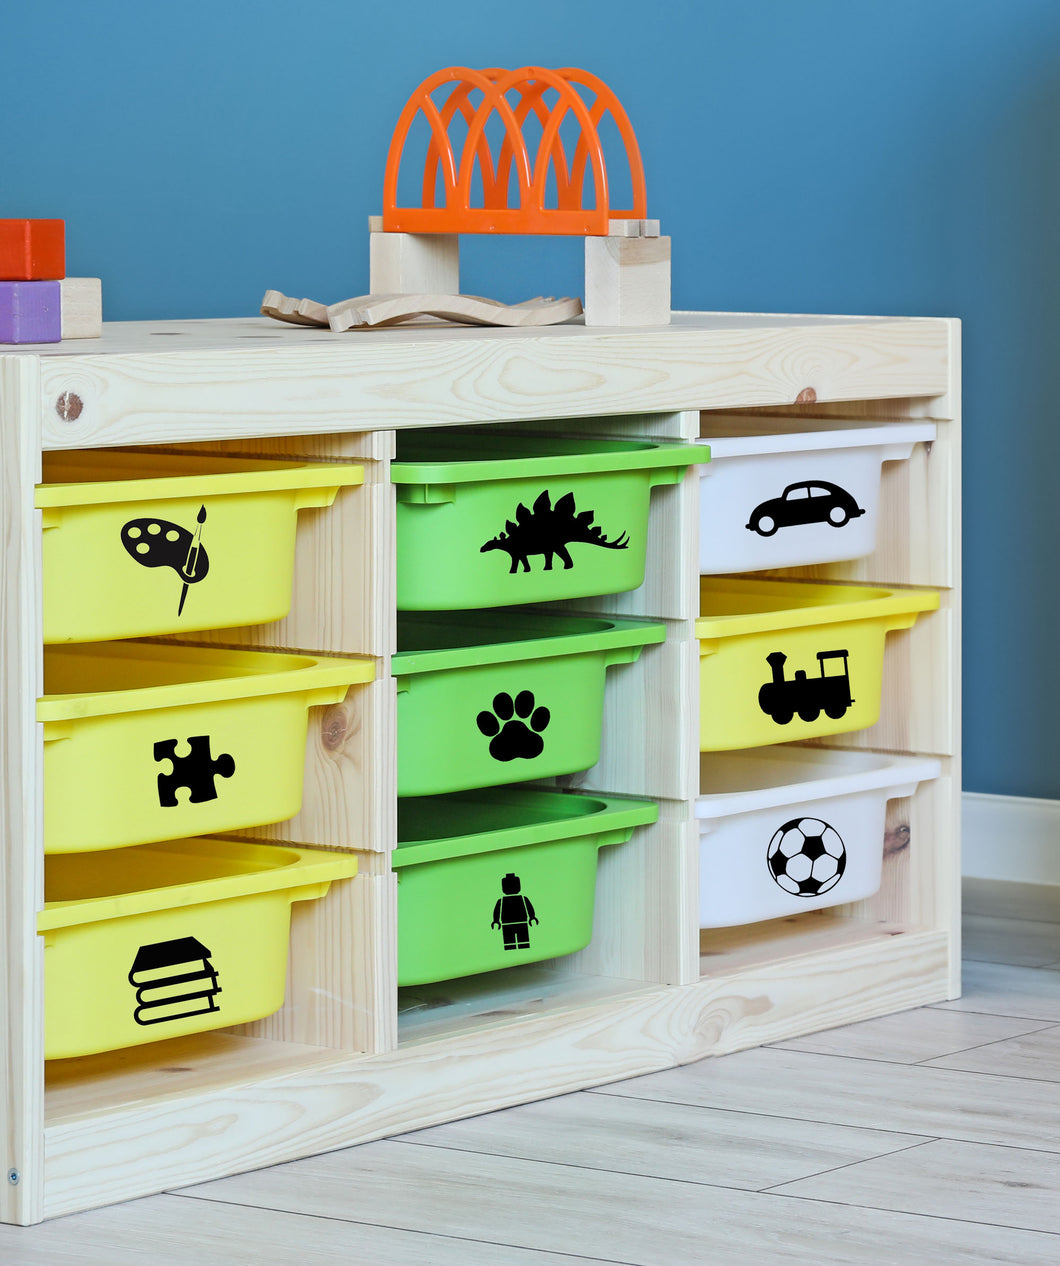 Toy Box Image Labels  - Set A - Toy Box Storage Sticker